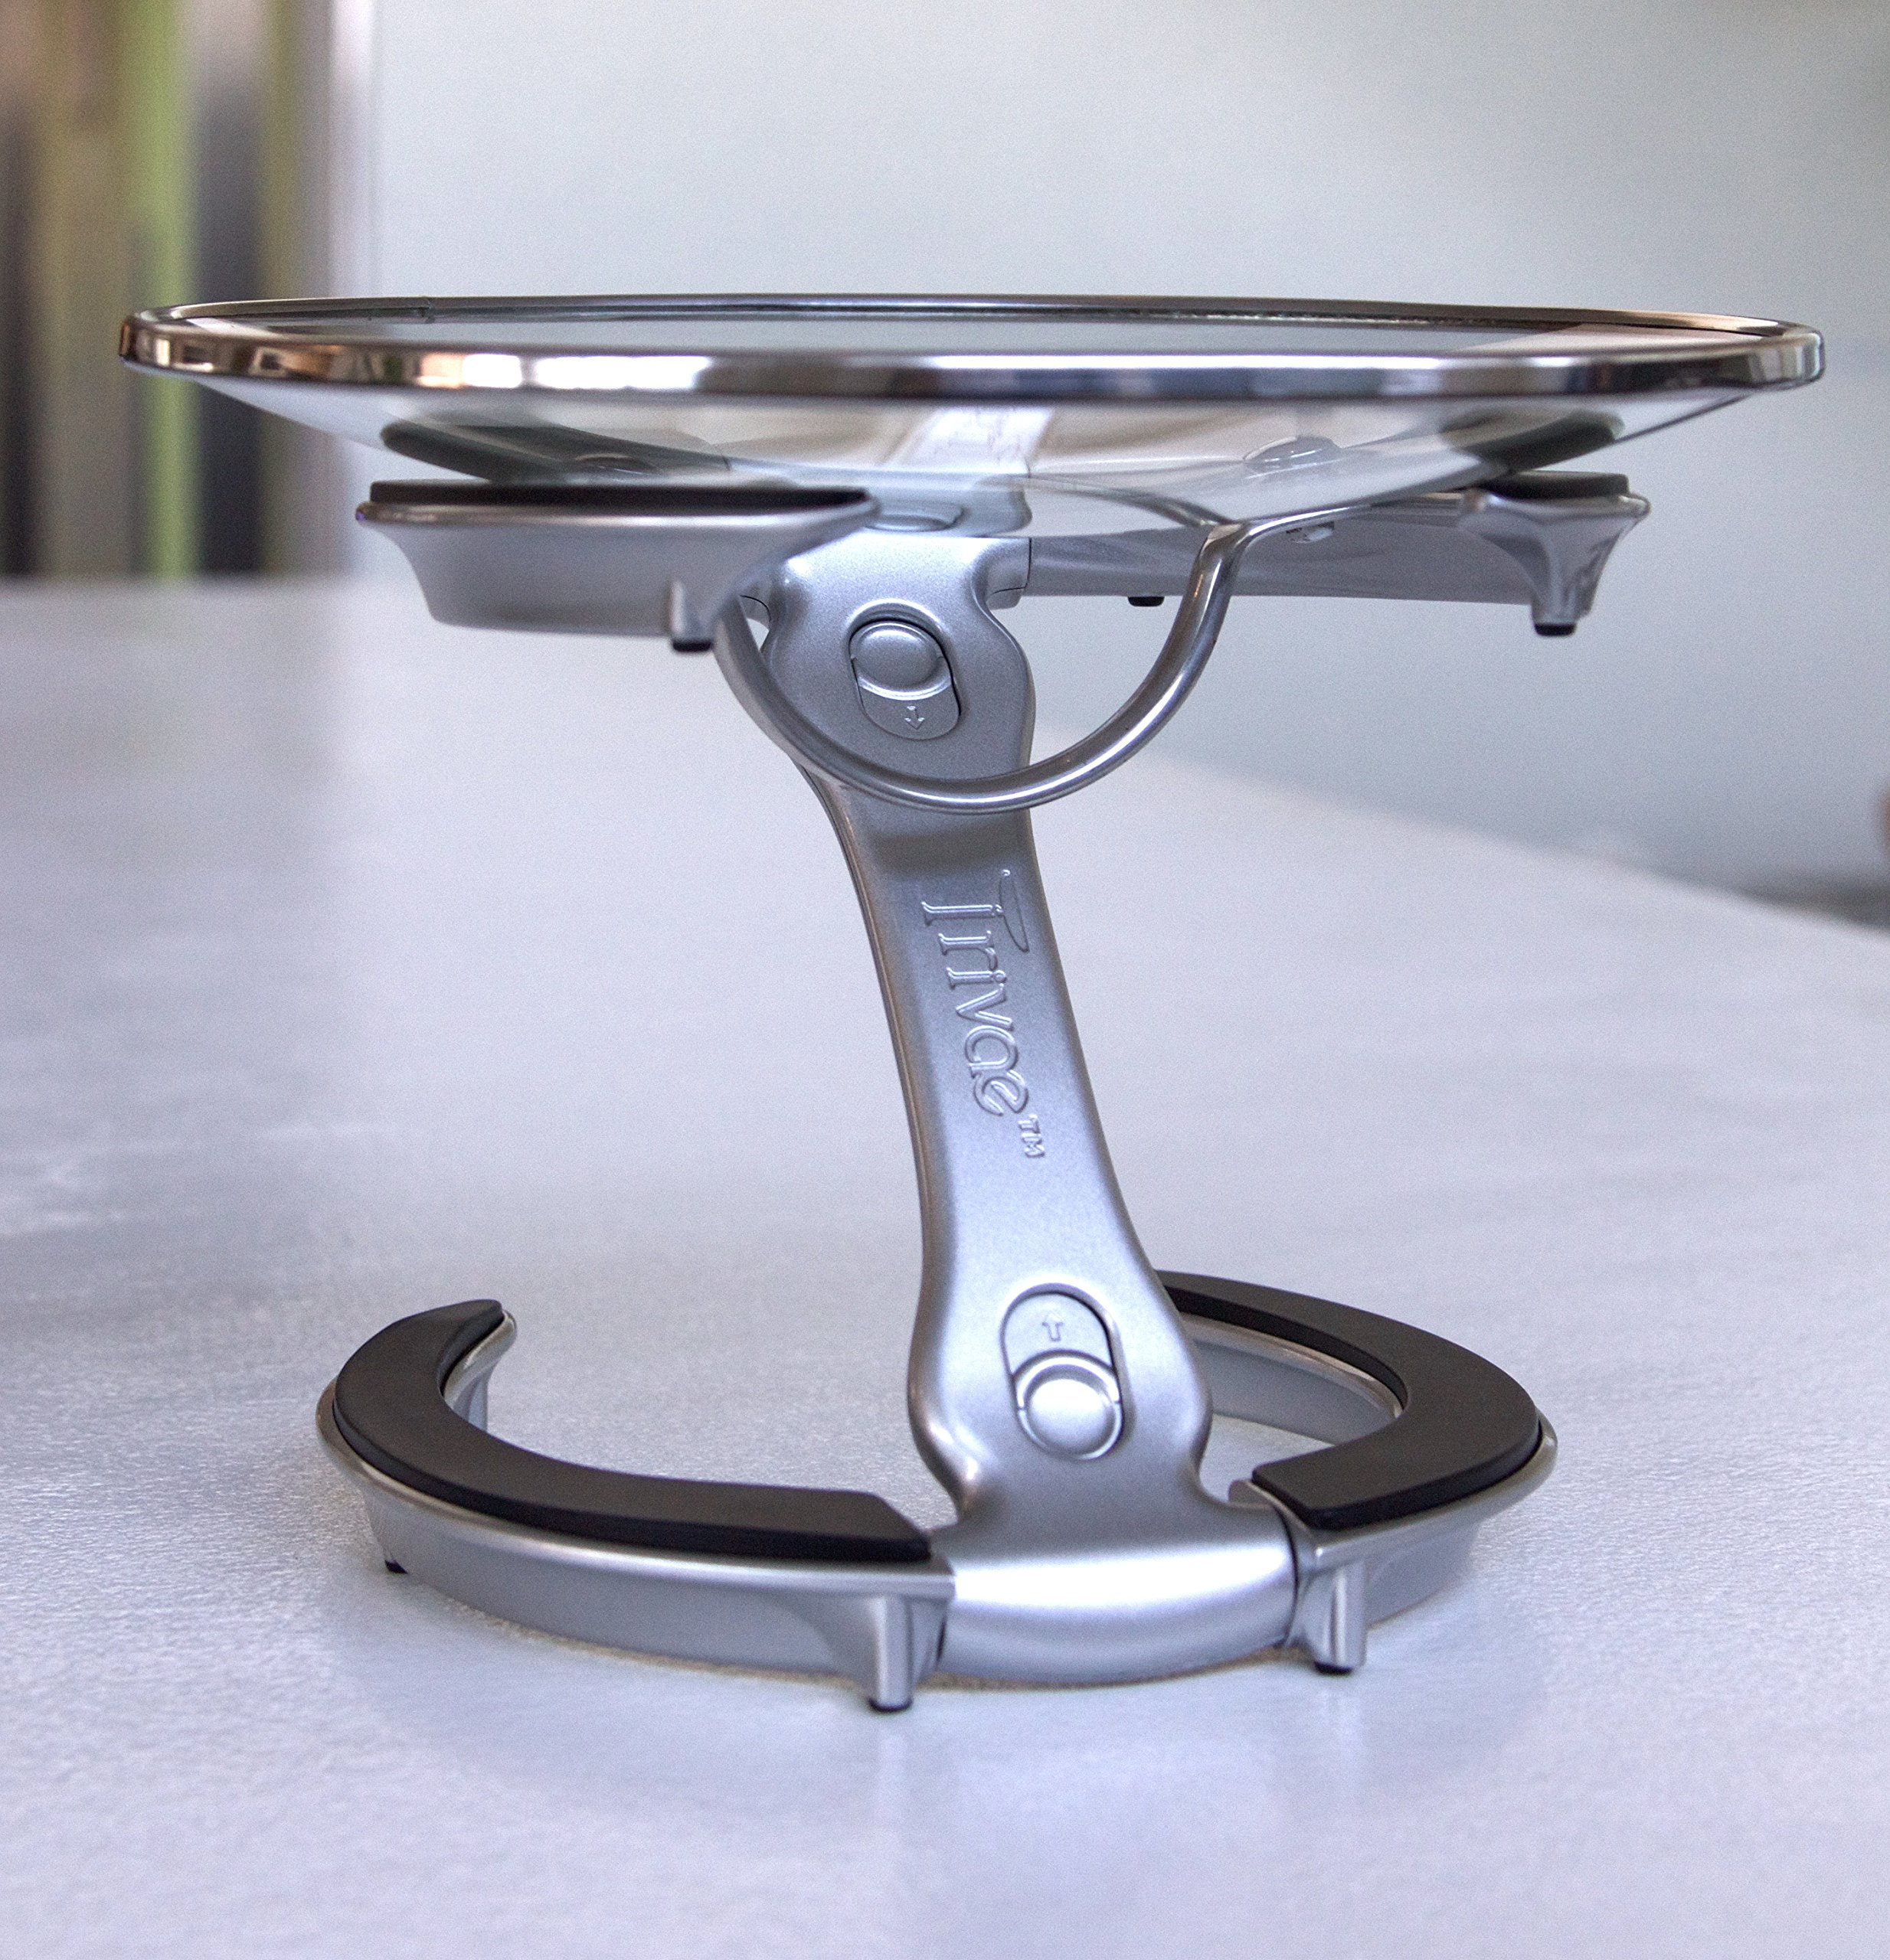 Trivae Multifunctional Kitchen Tool & Tabletop Accessory - Lid Holder, Expandable Trivet and Display Stand in One